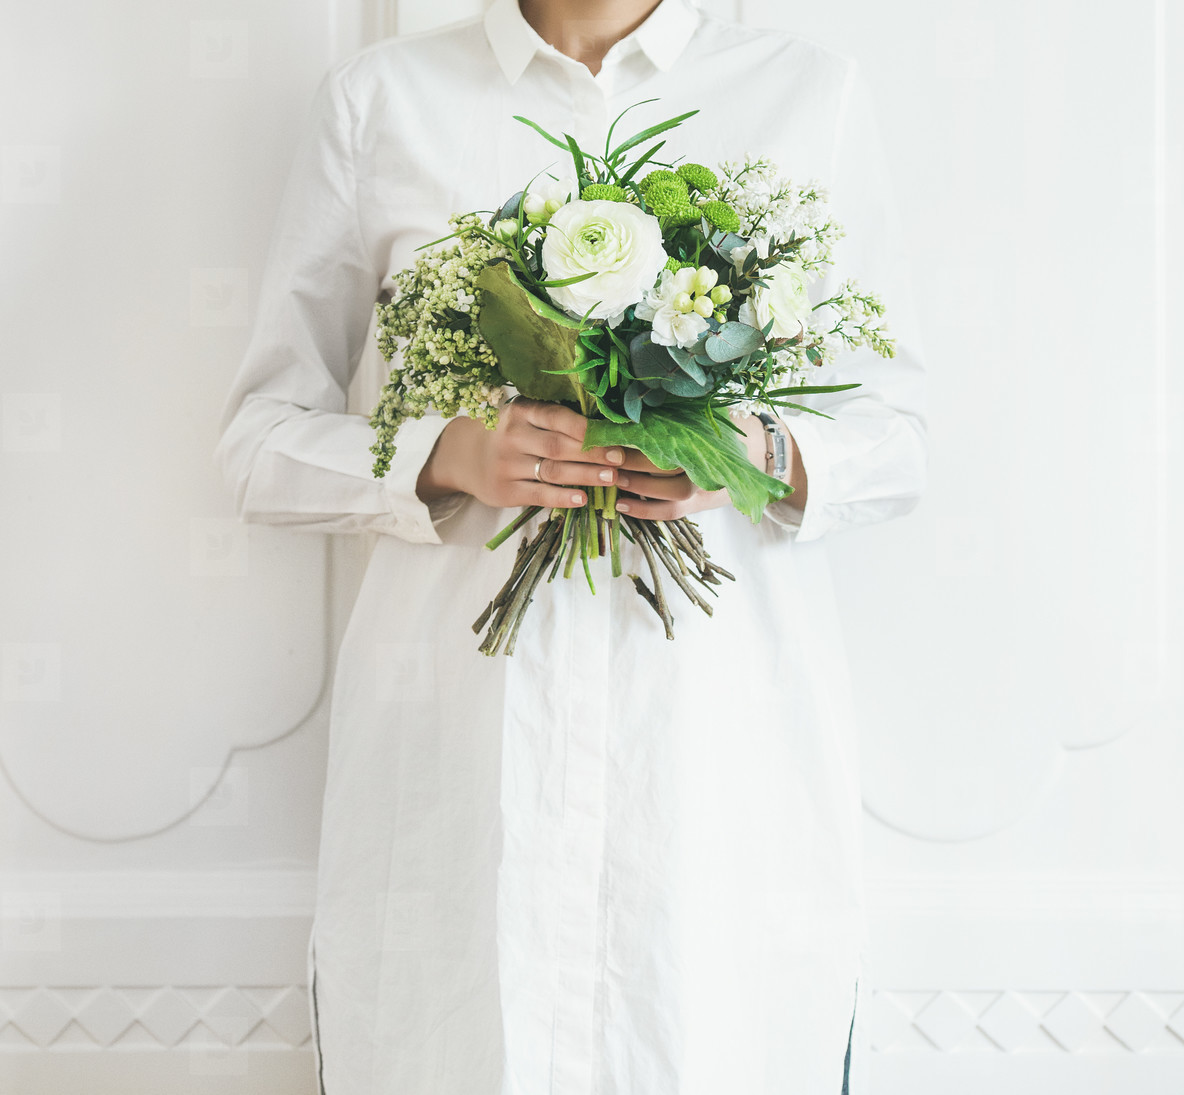 Young woman wearing white clothes holding bouquet  white wall background